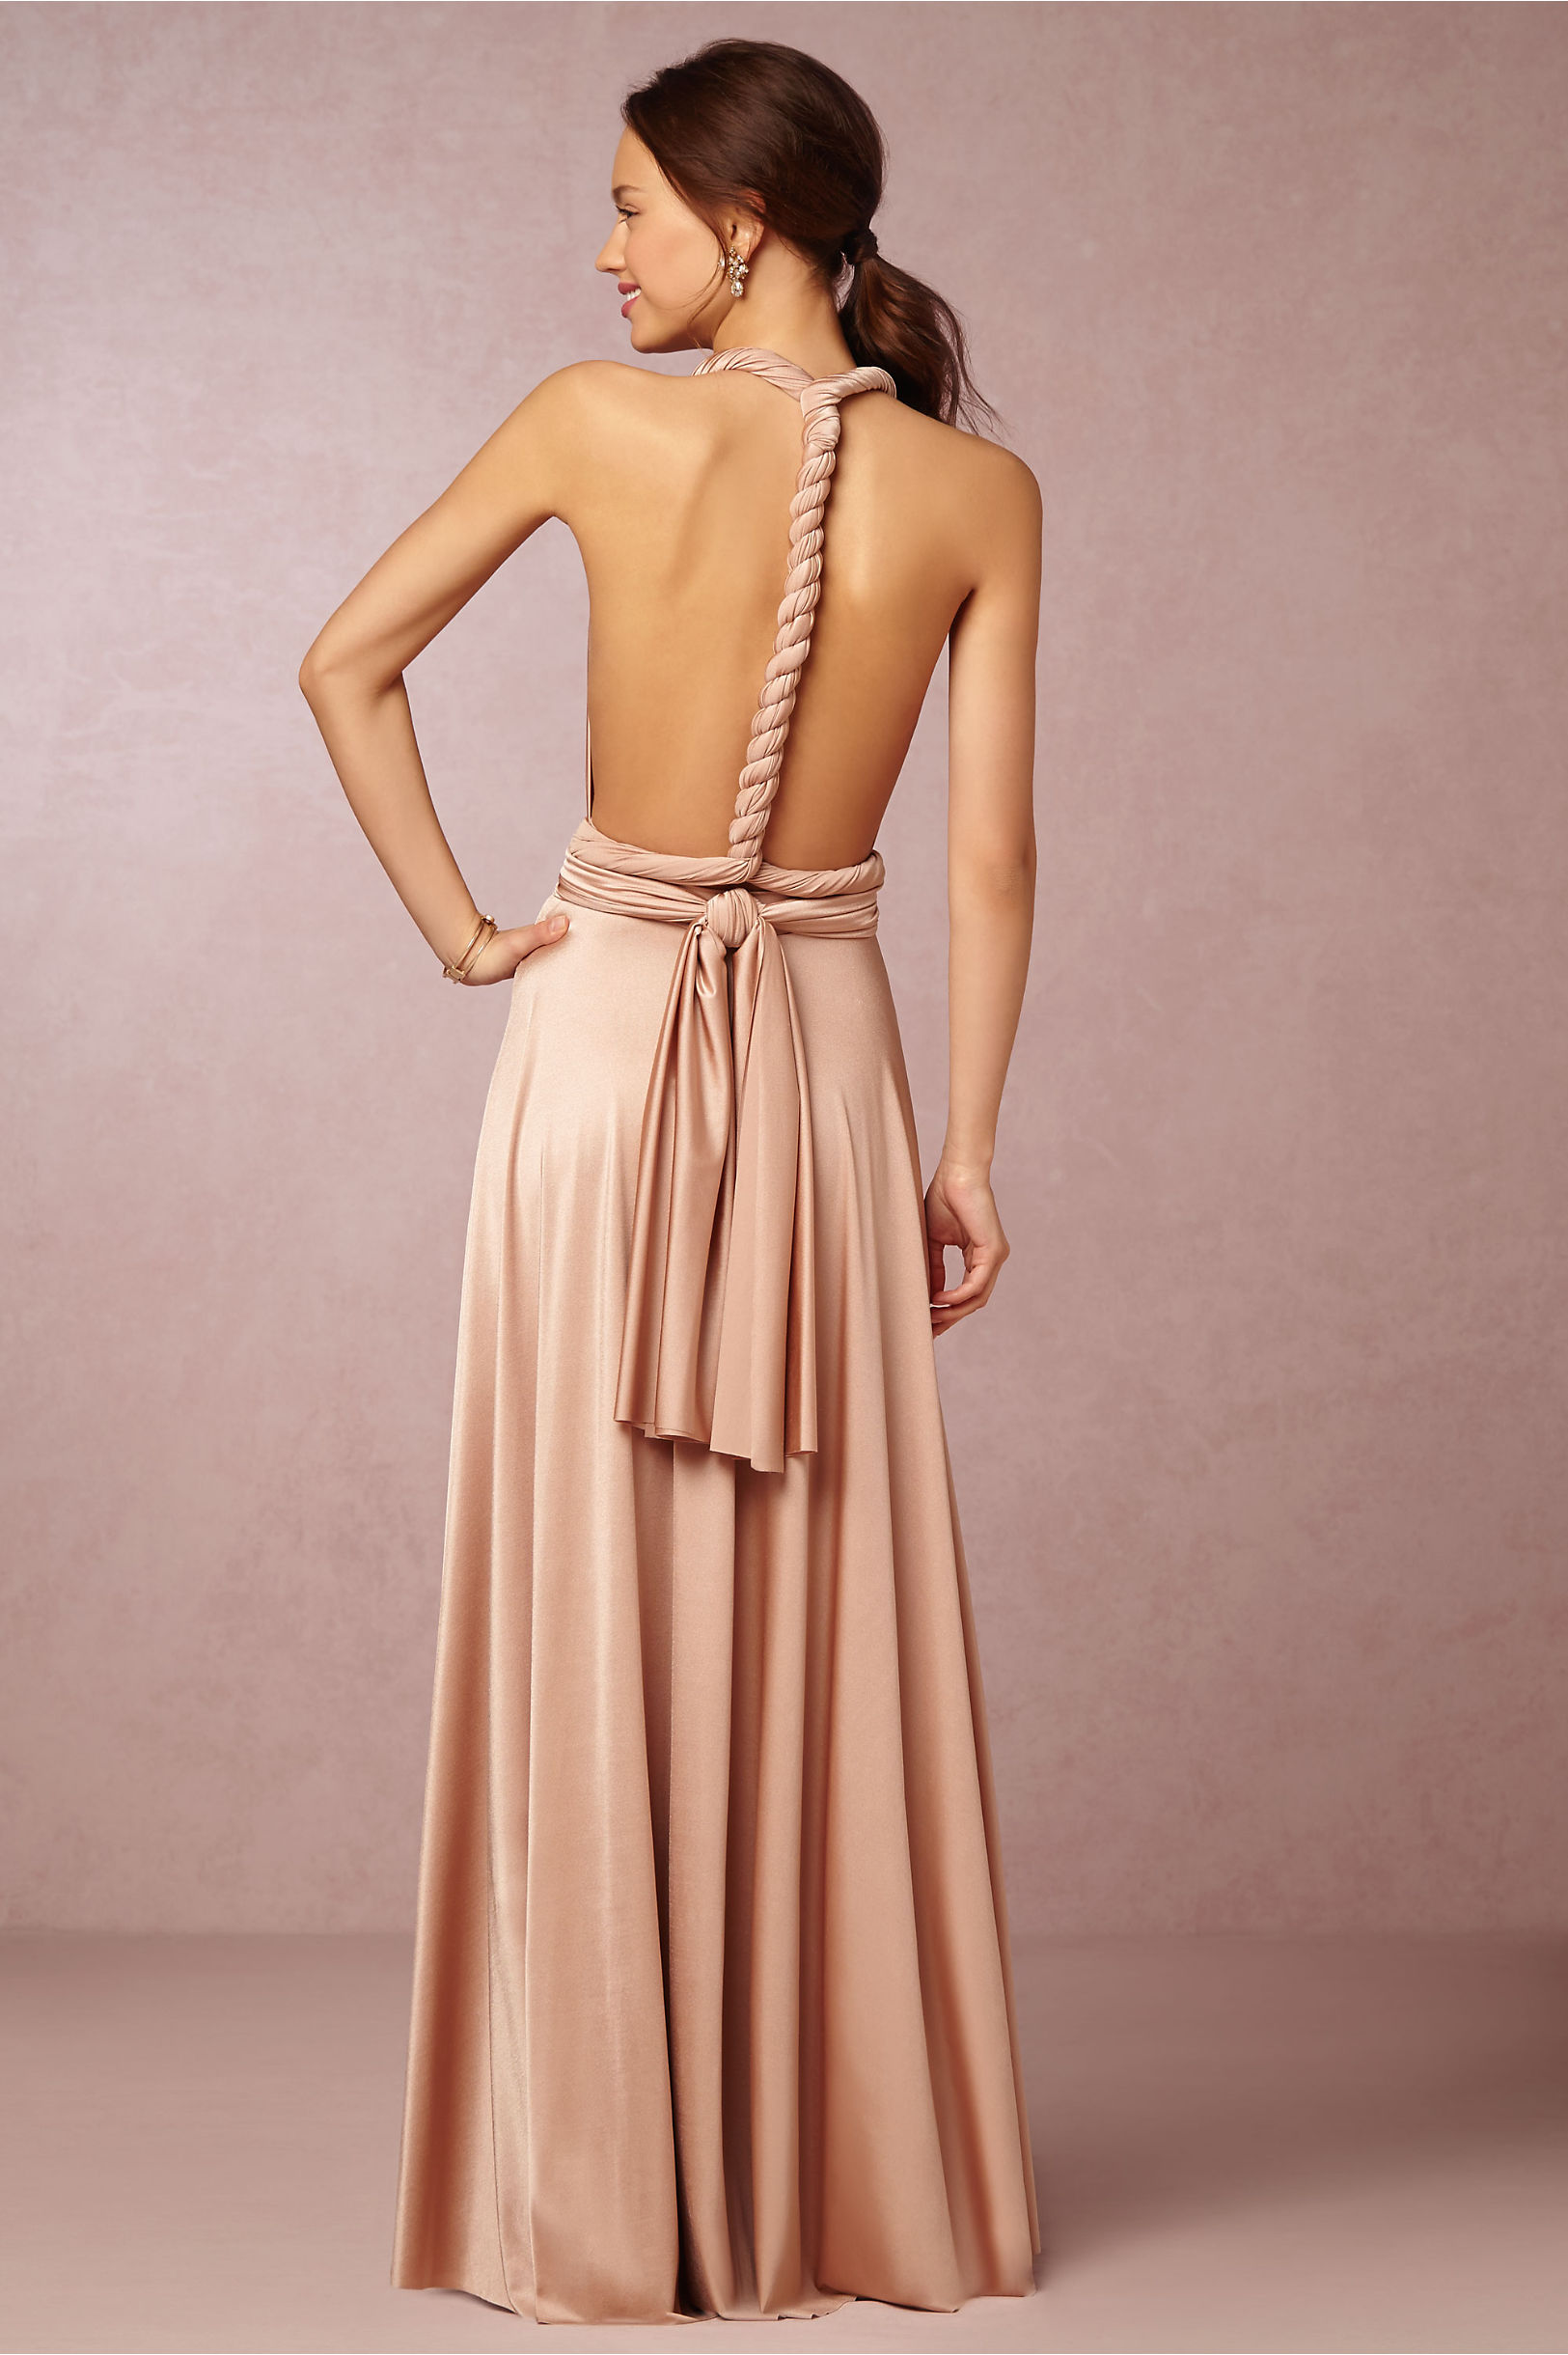 Ginger Convertible Maxi Dress in Bridal Party Bridesmaid Dresses ...